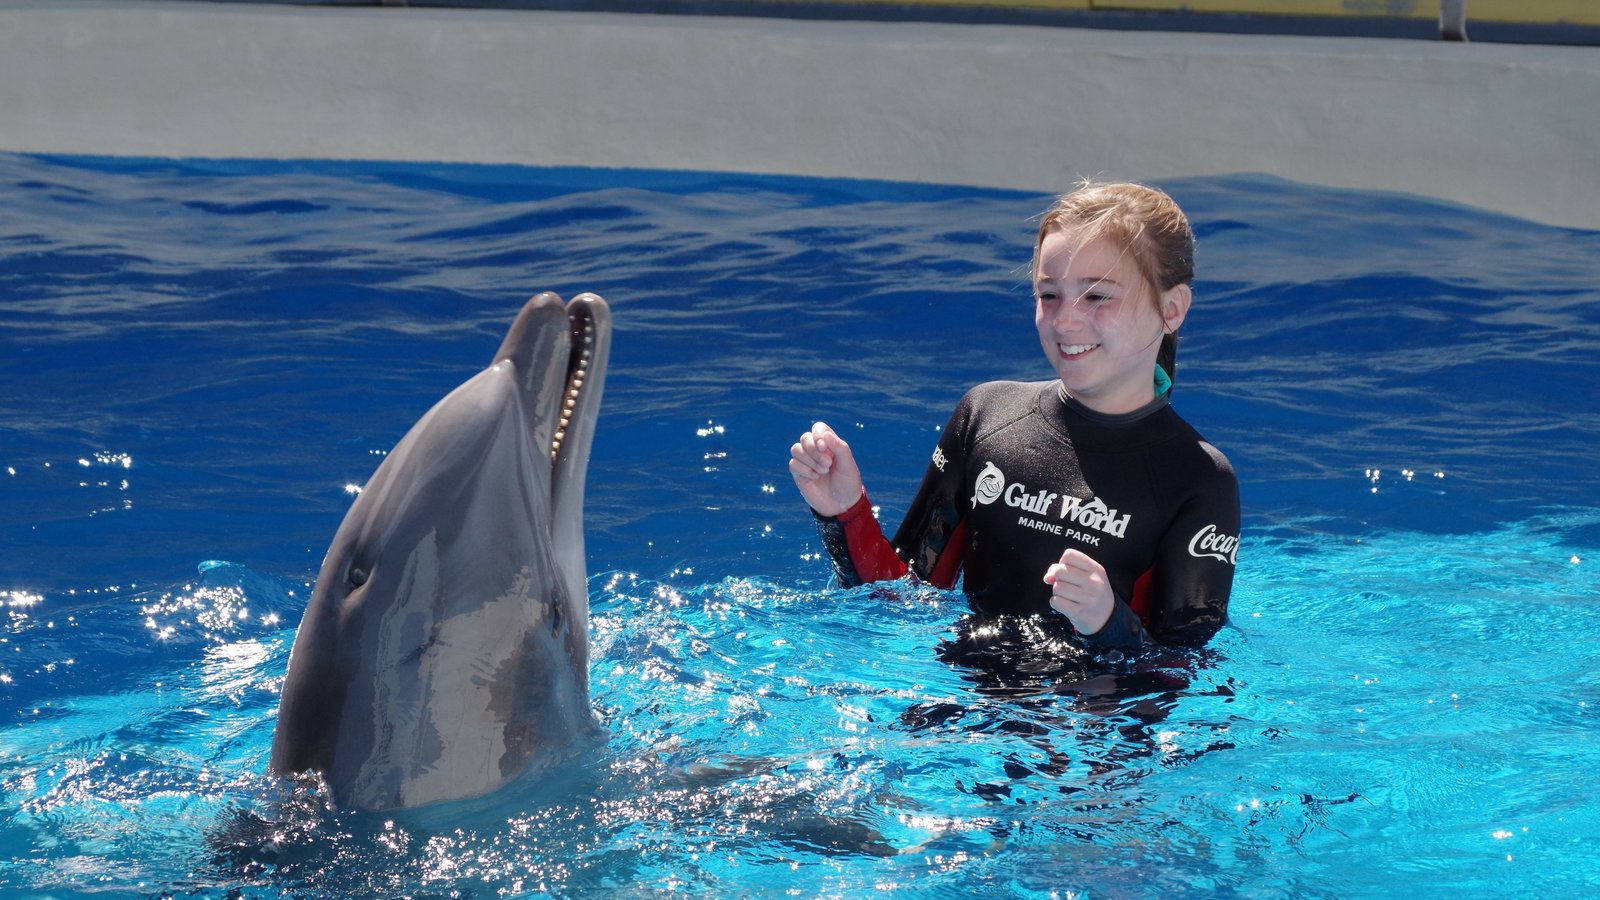 Gulf World Marine Park featuring marine life and watersports as well as an individual child